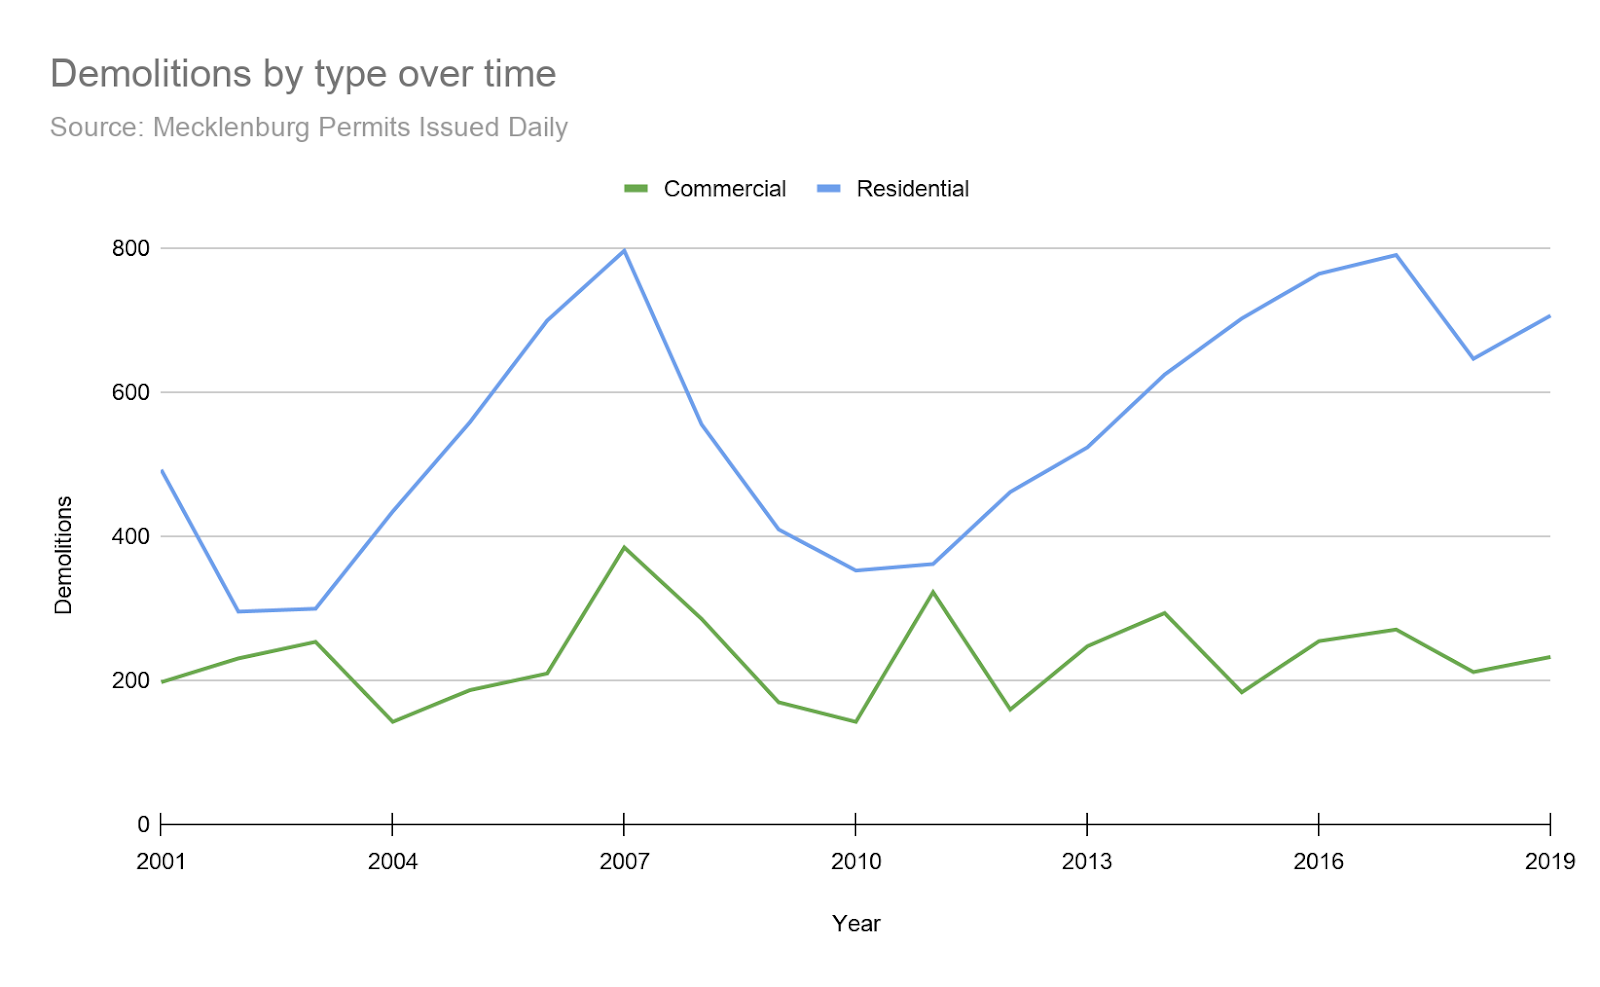 A graph of the demolitions by type over time from 2001 to 2019.